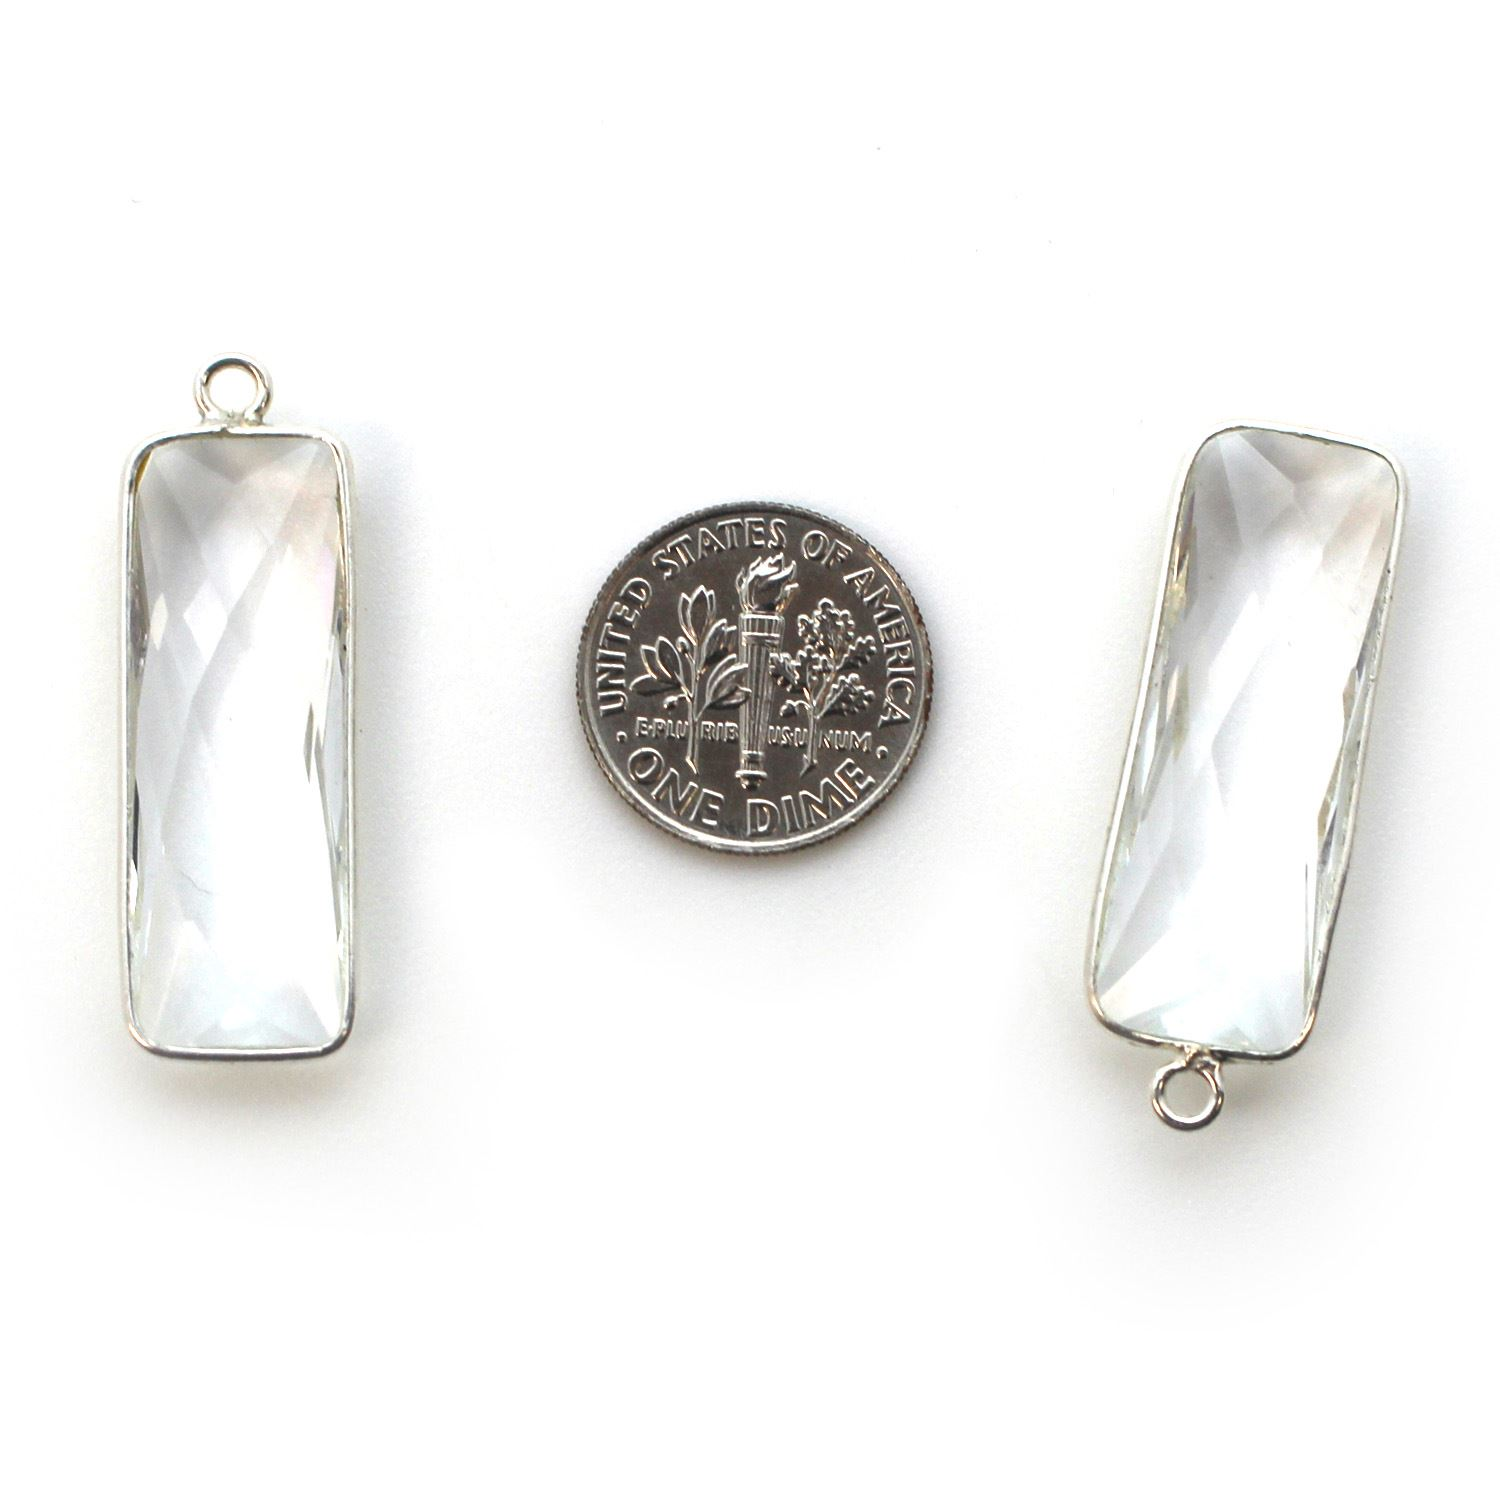 Bezel Charm Pendant -Sterling Silver Charm-Elongated Rectangle Shape- Crystal Quartz- April Birthstone -34 by 11mm (sold per 2 pieces)